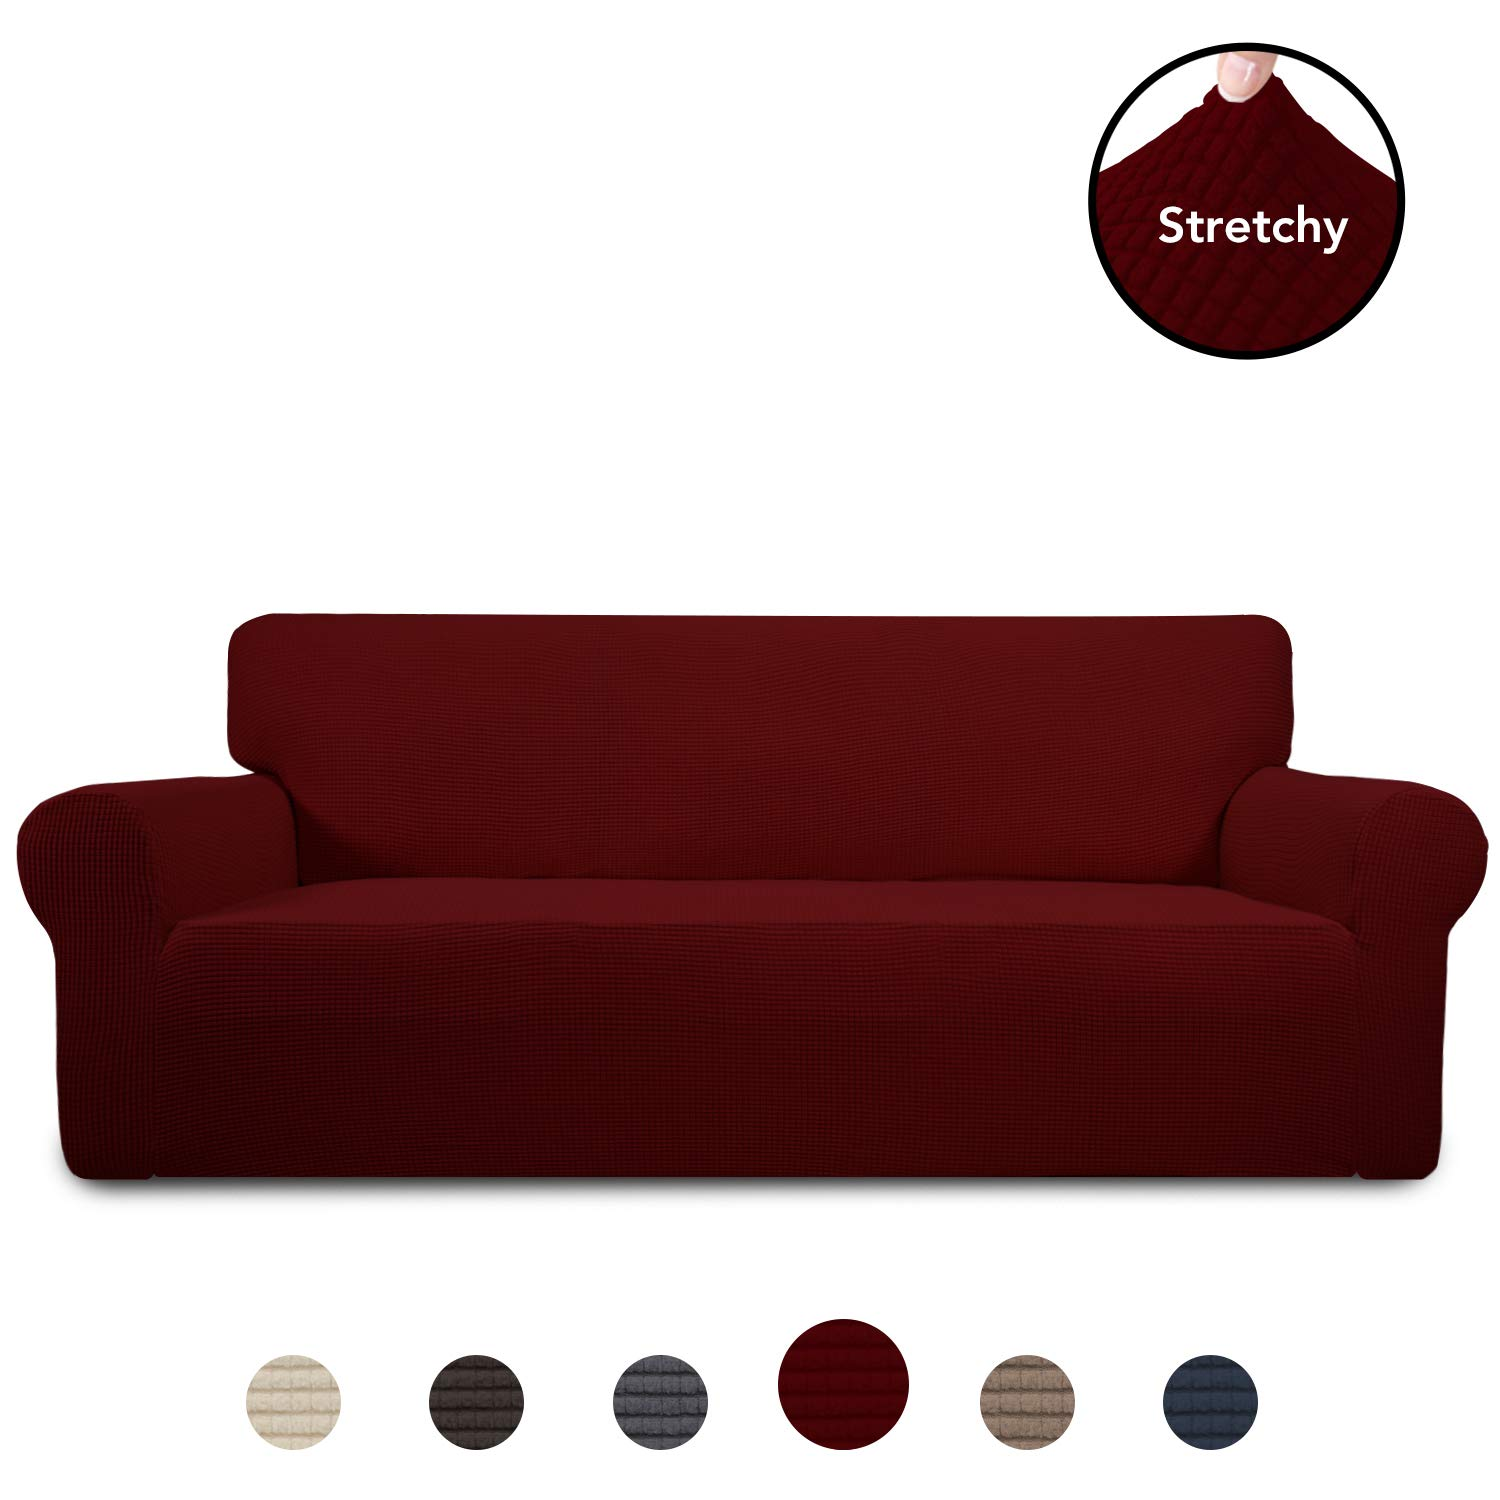 Argstar Large Sofa Slip Cover Couch Slipcover Furniture Protector for Pet Cats,